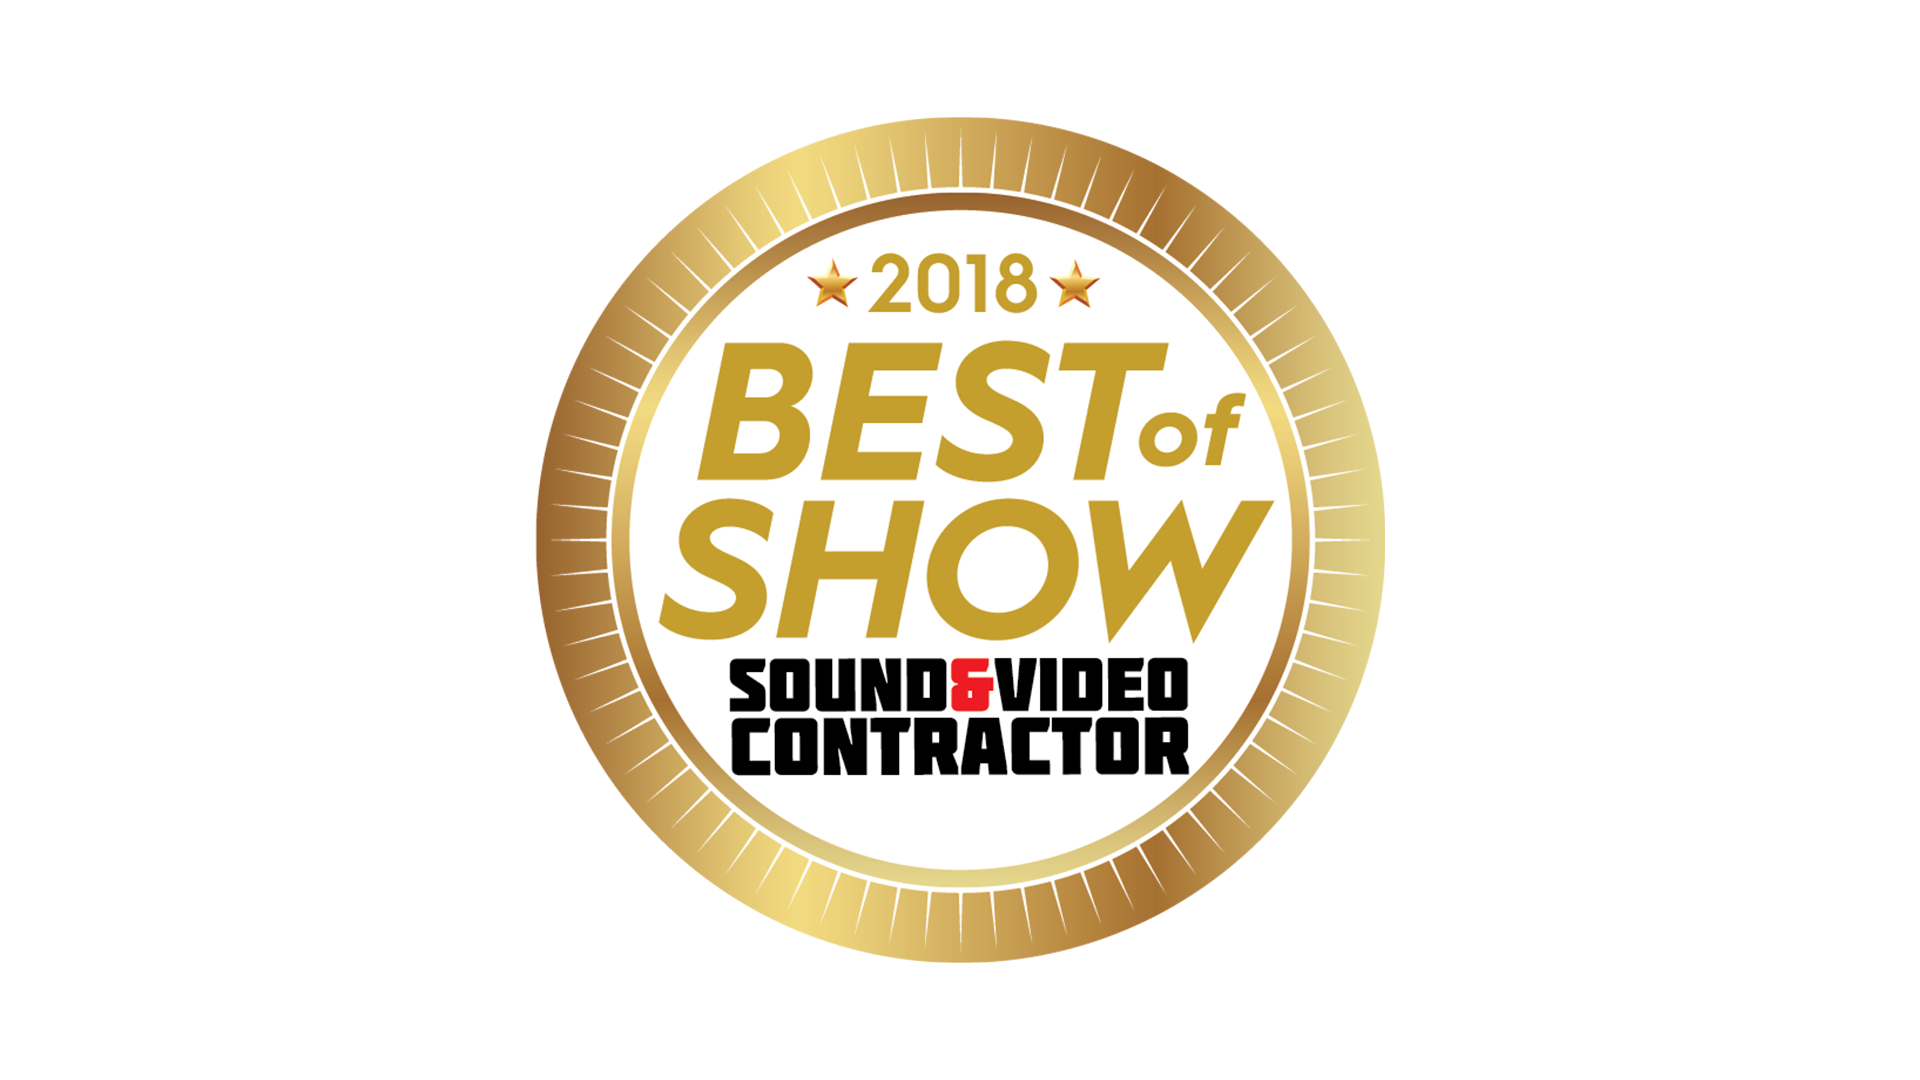 2018 Best of Show - Sound & Video Contractor